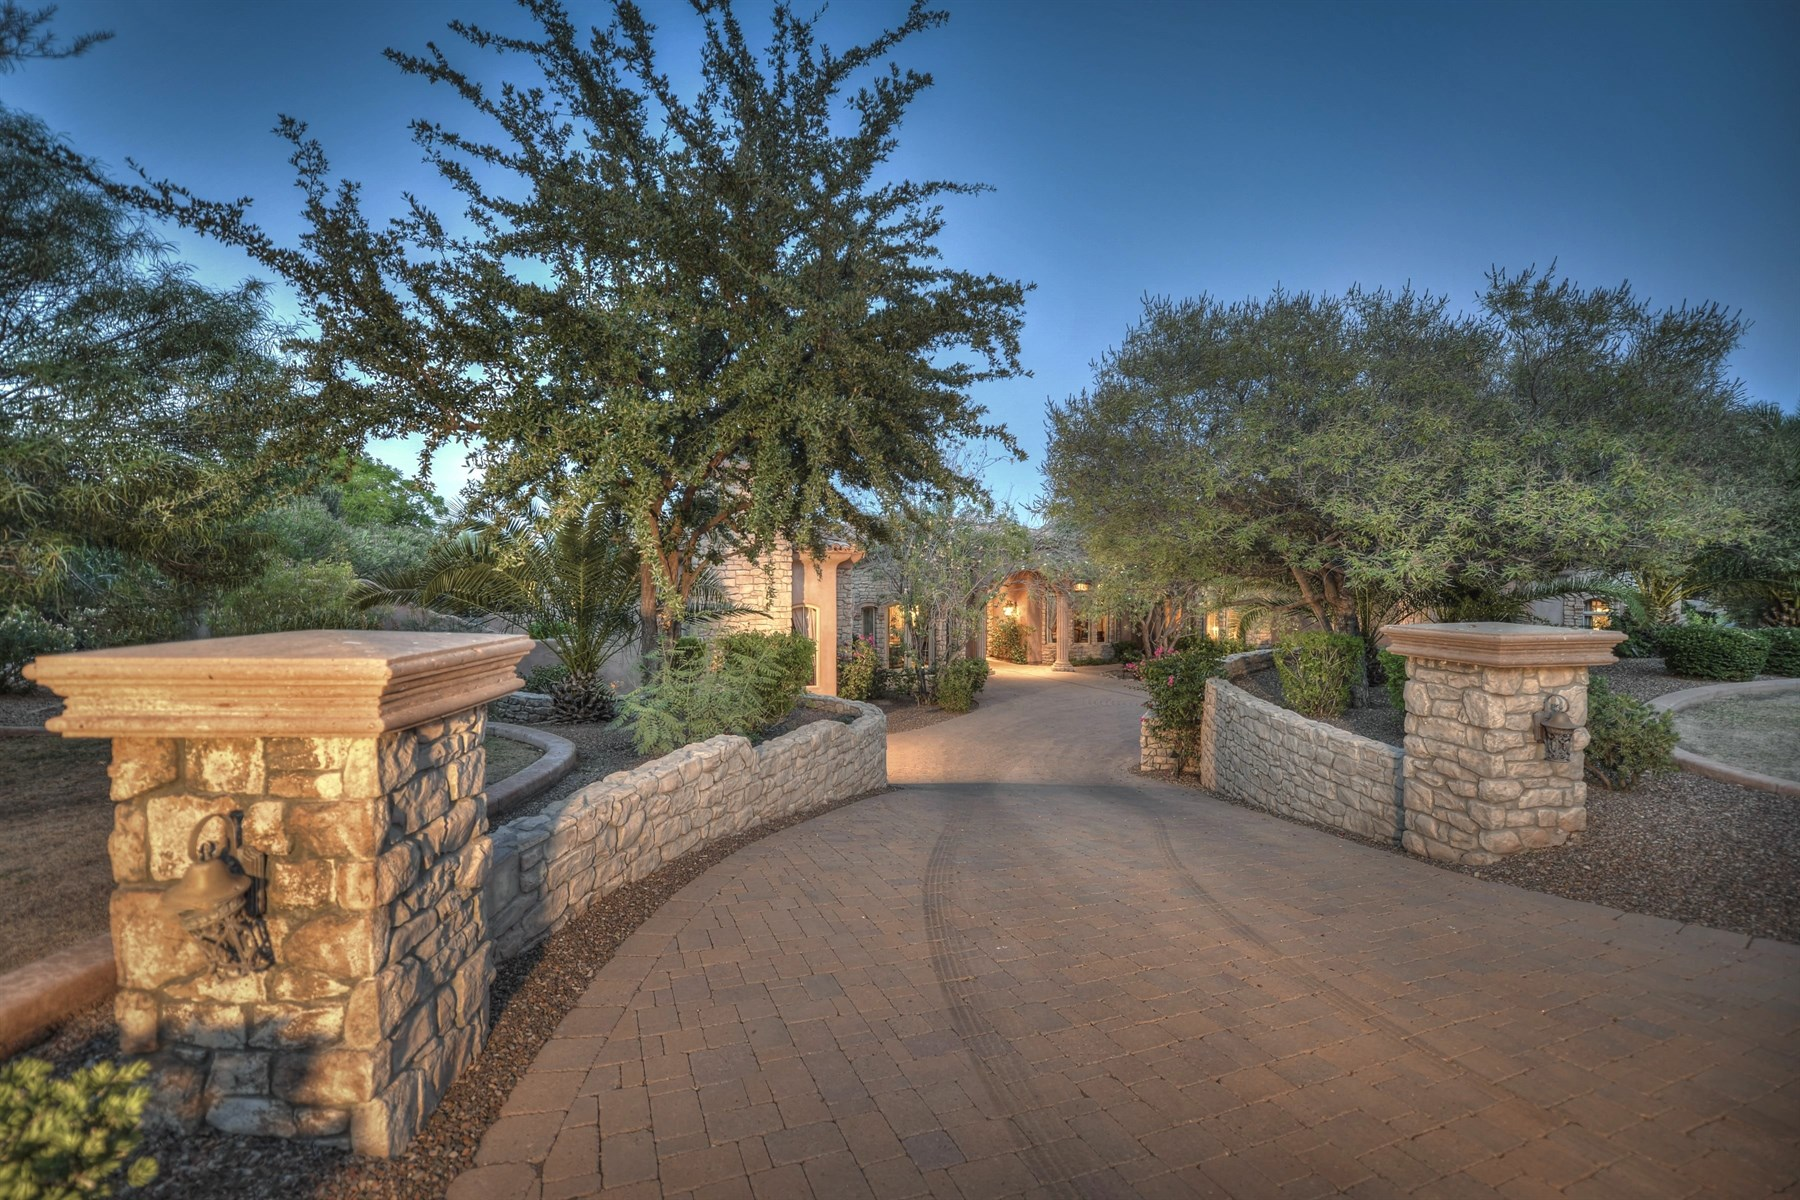 Casa Unifamiliar por un Venta en Truly Magnificent Mediterranean Estate 8305 N Ridgeview Dr Paradise Valley, Arizona, 85253 Estados Unidos